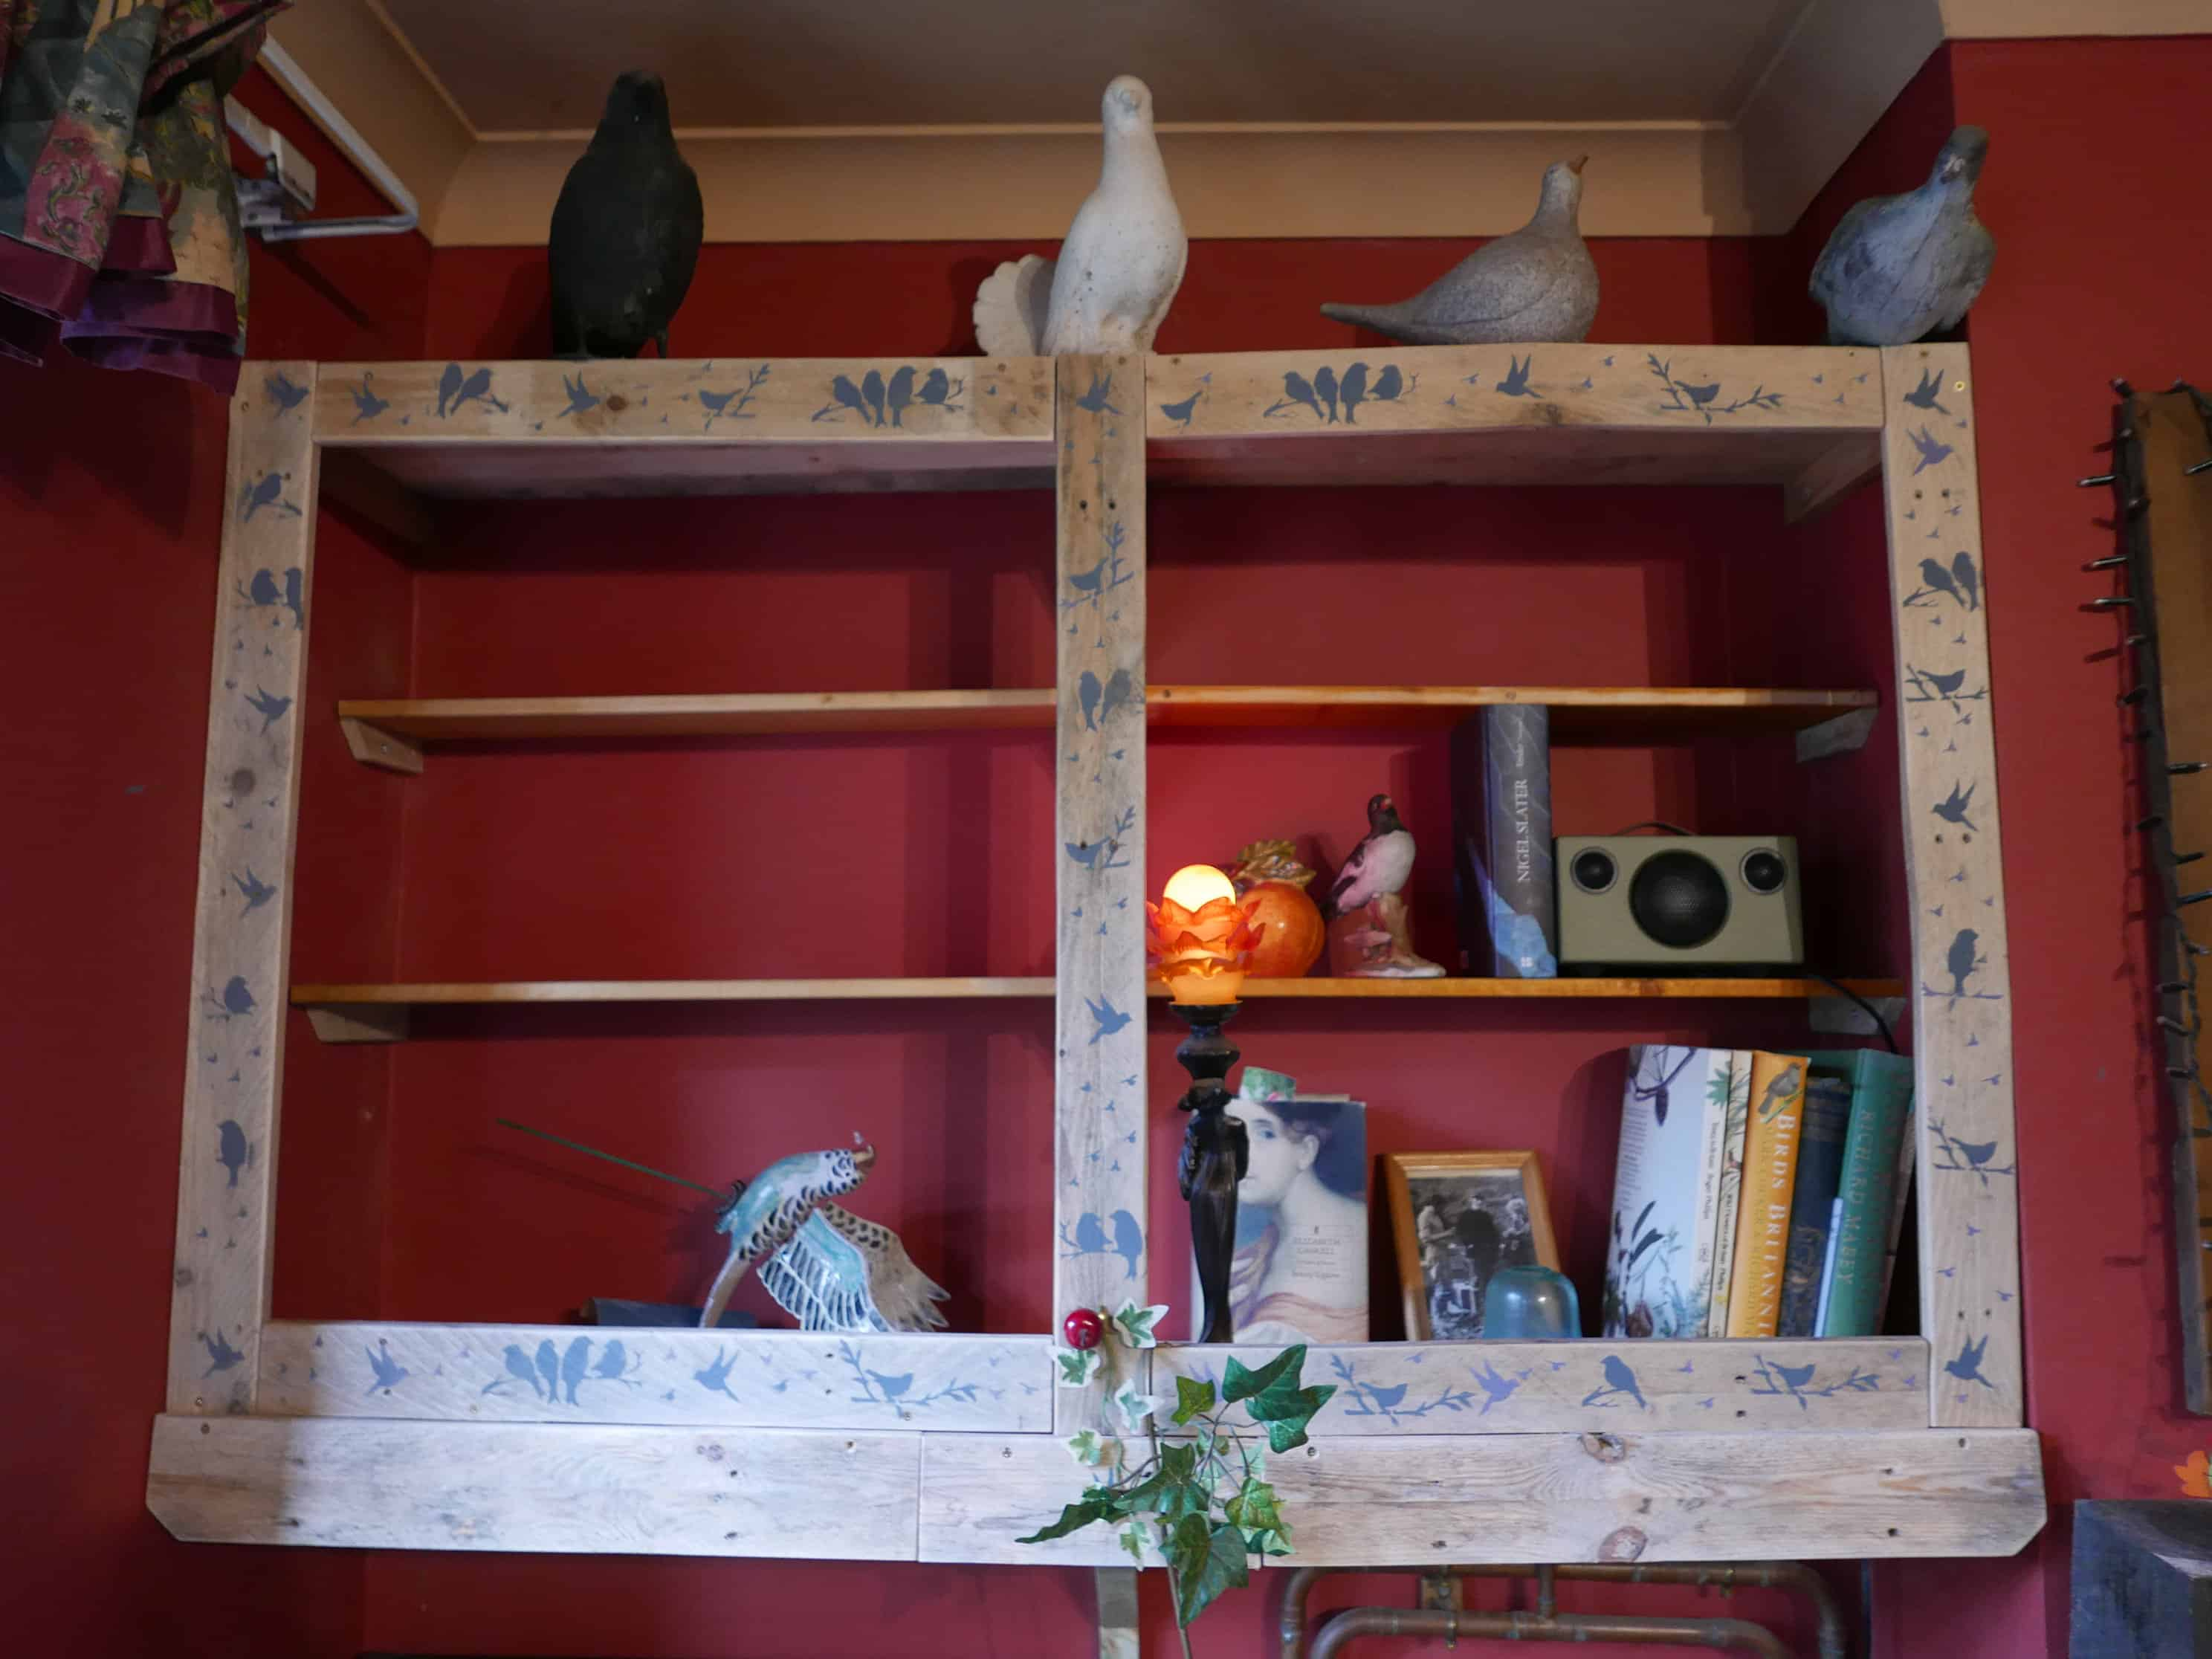 Shelves Made From Pallets Diy Pallet Bookshelf Pallet Bookcase O Pallet Ideas O 1001 Pallets